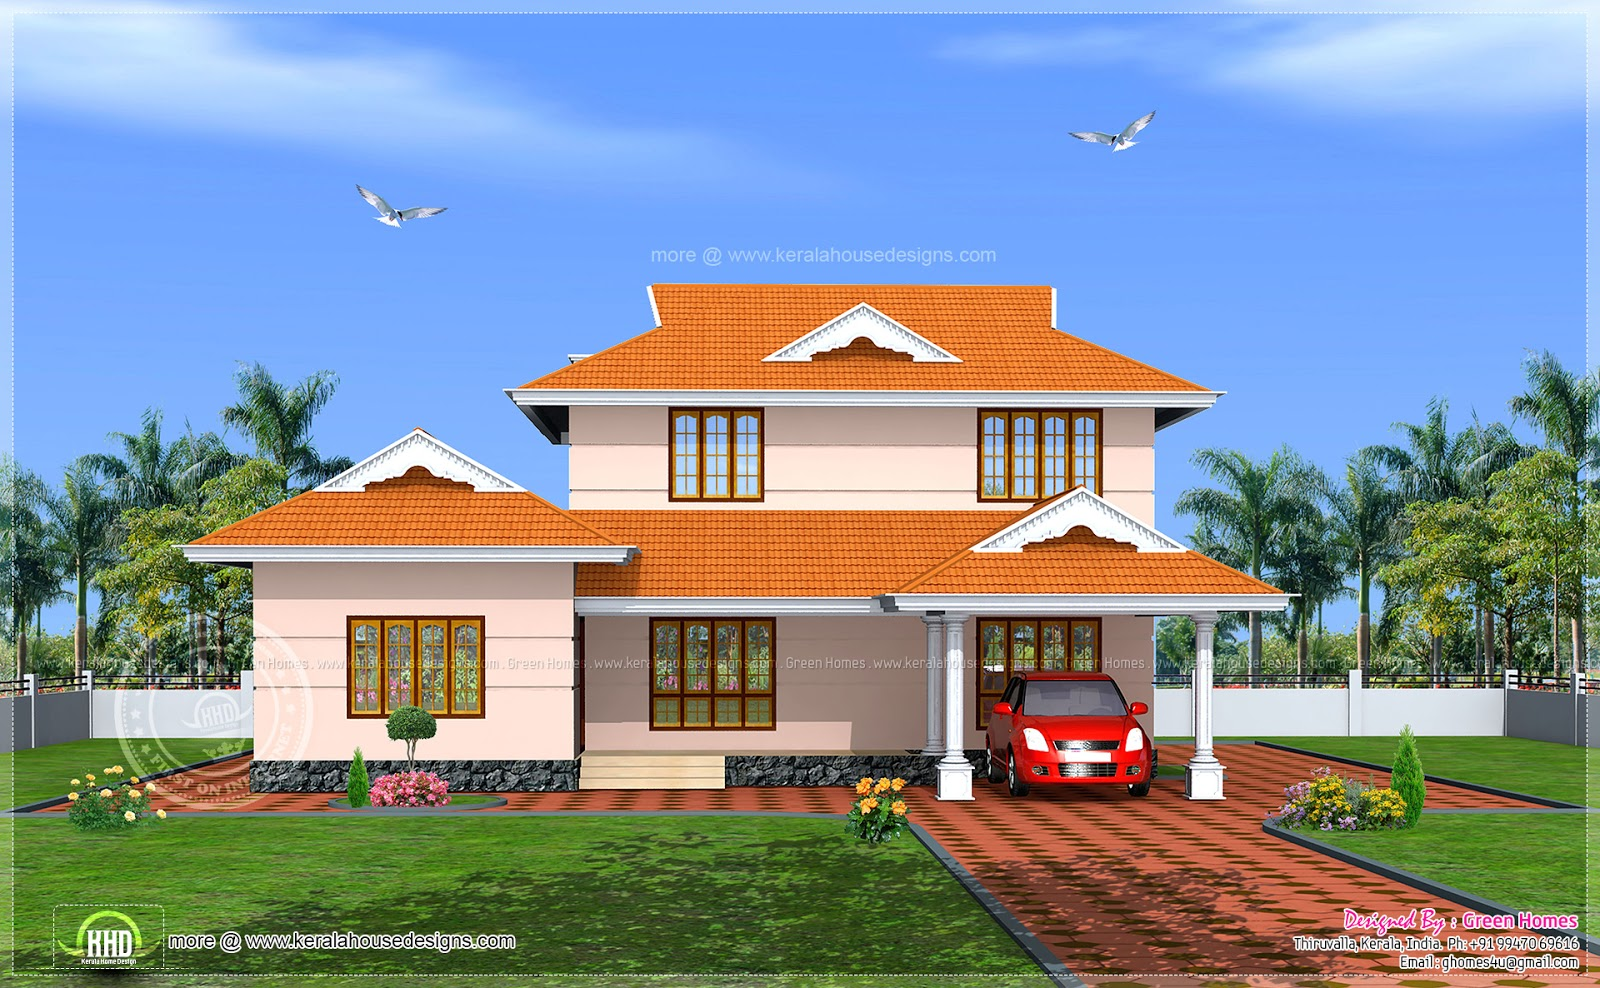 House plans and design house plans in kerala model with for Kerala home designs and floor plans